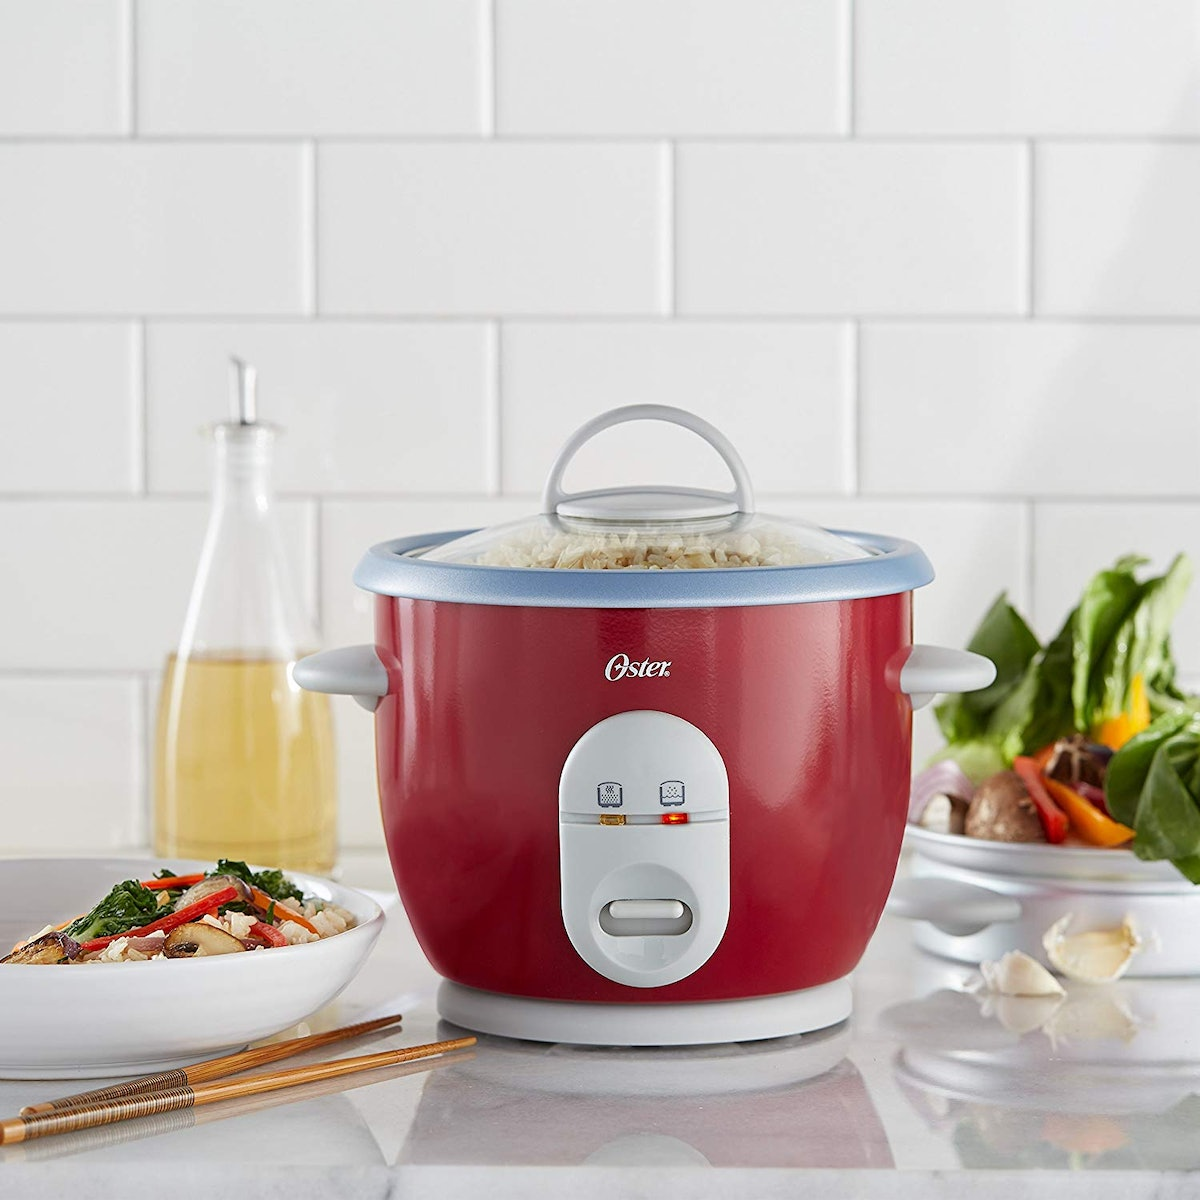 Oster 6-Cup Rice Cooker